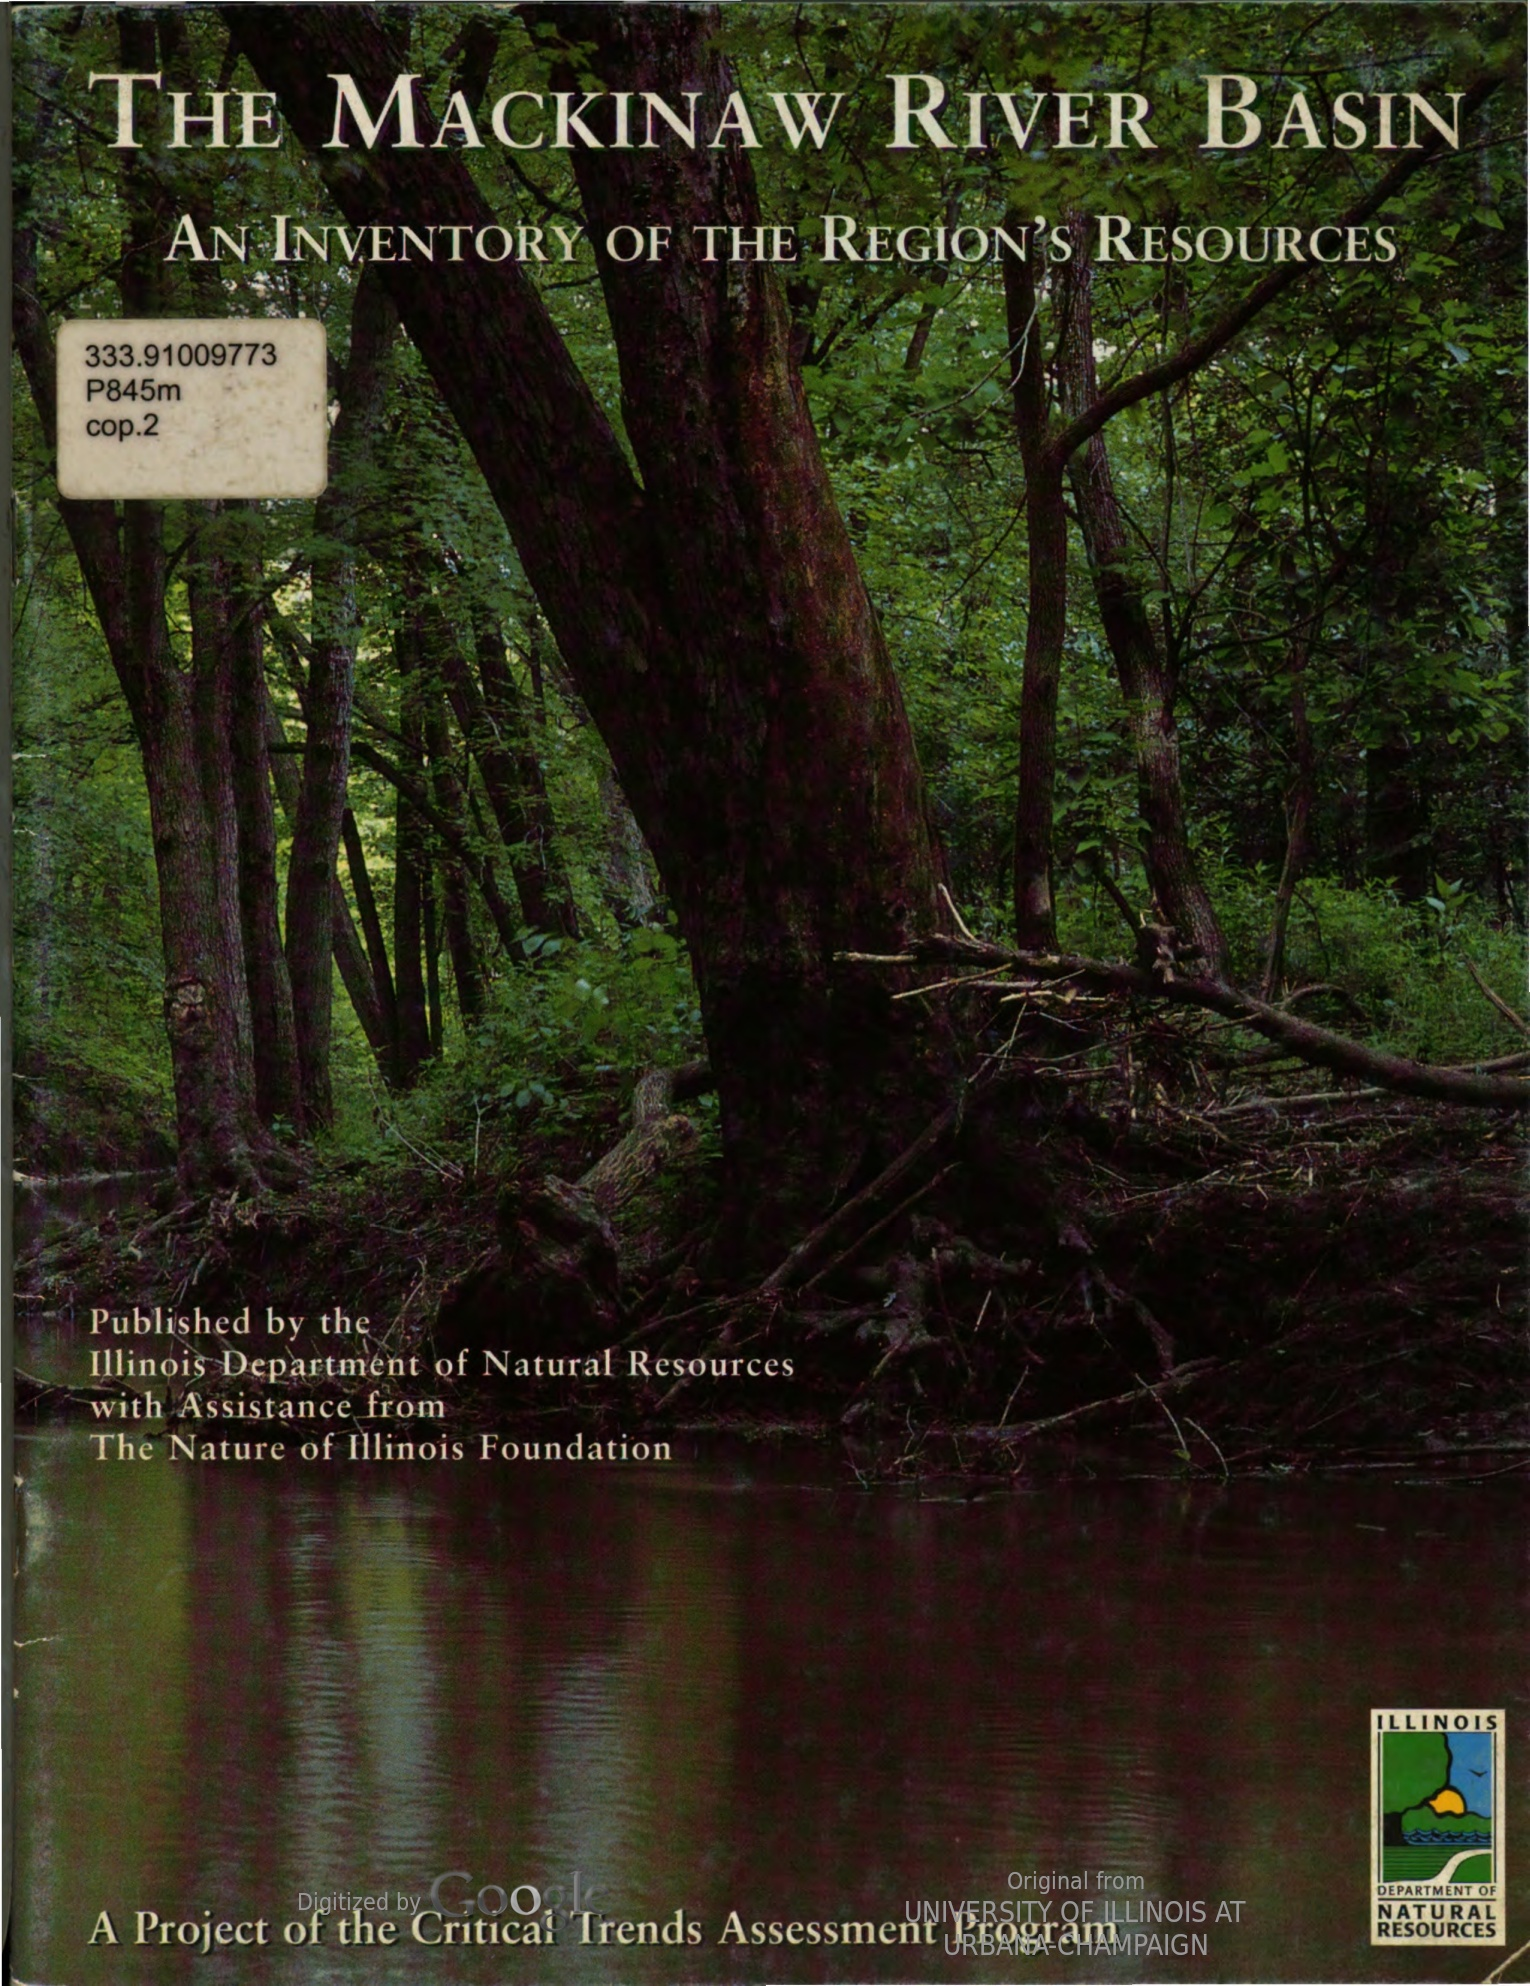 Illinois River Bluffs : An Inventory of the Region's Resources, cover